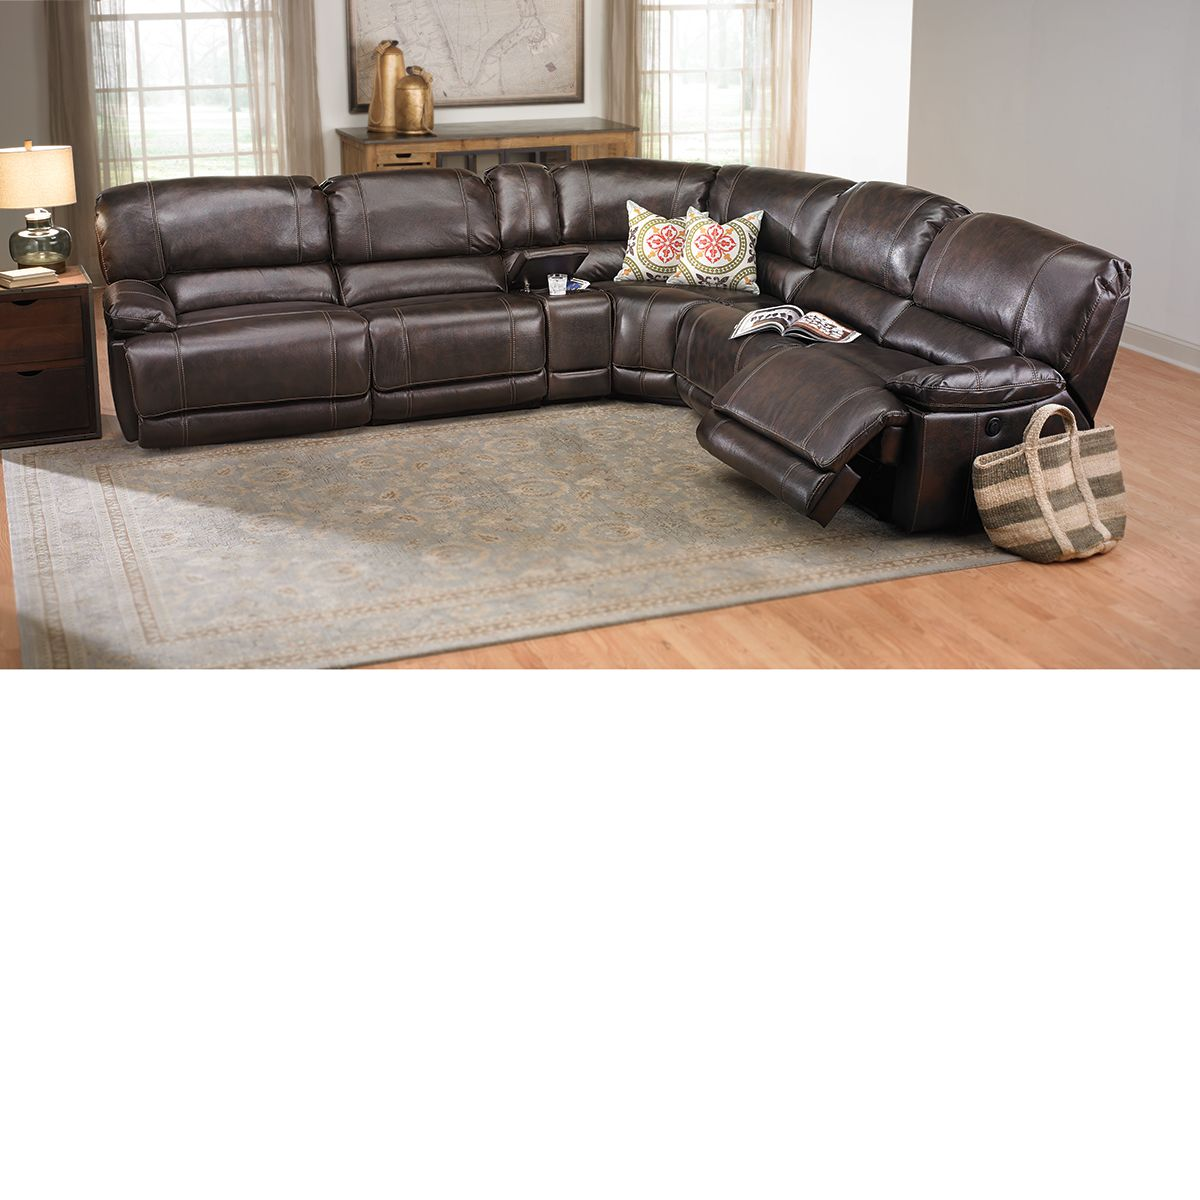 The Dump Luxe Furniture Outlet Power Reclining Sectional Sofa